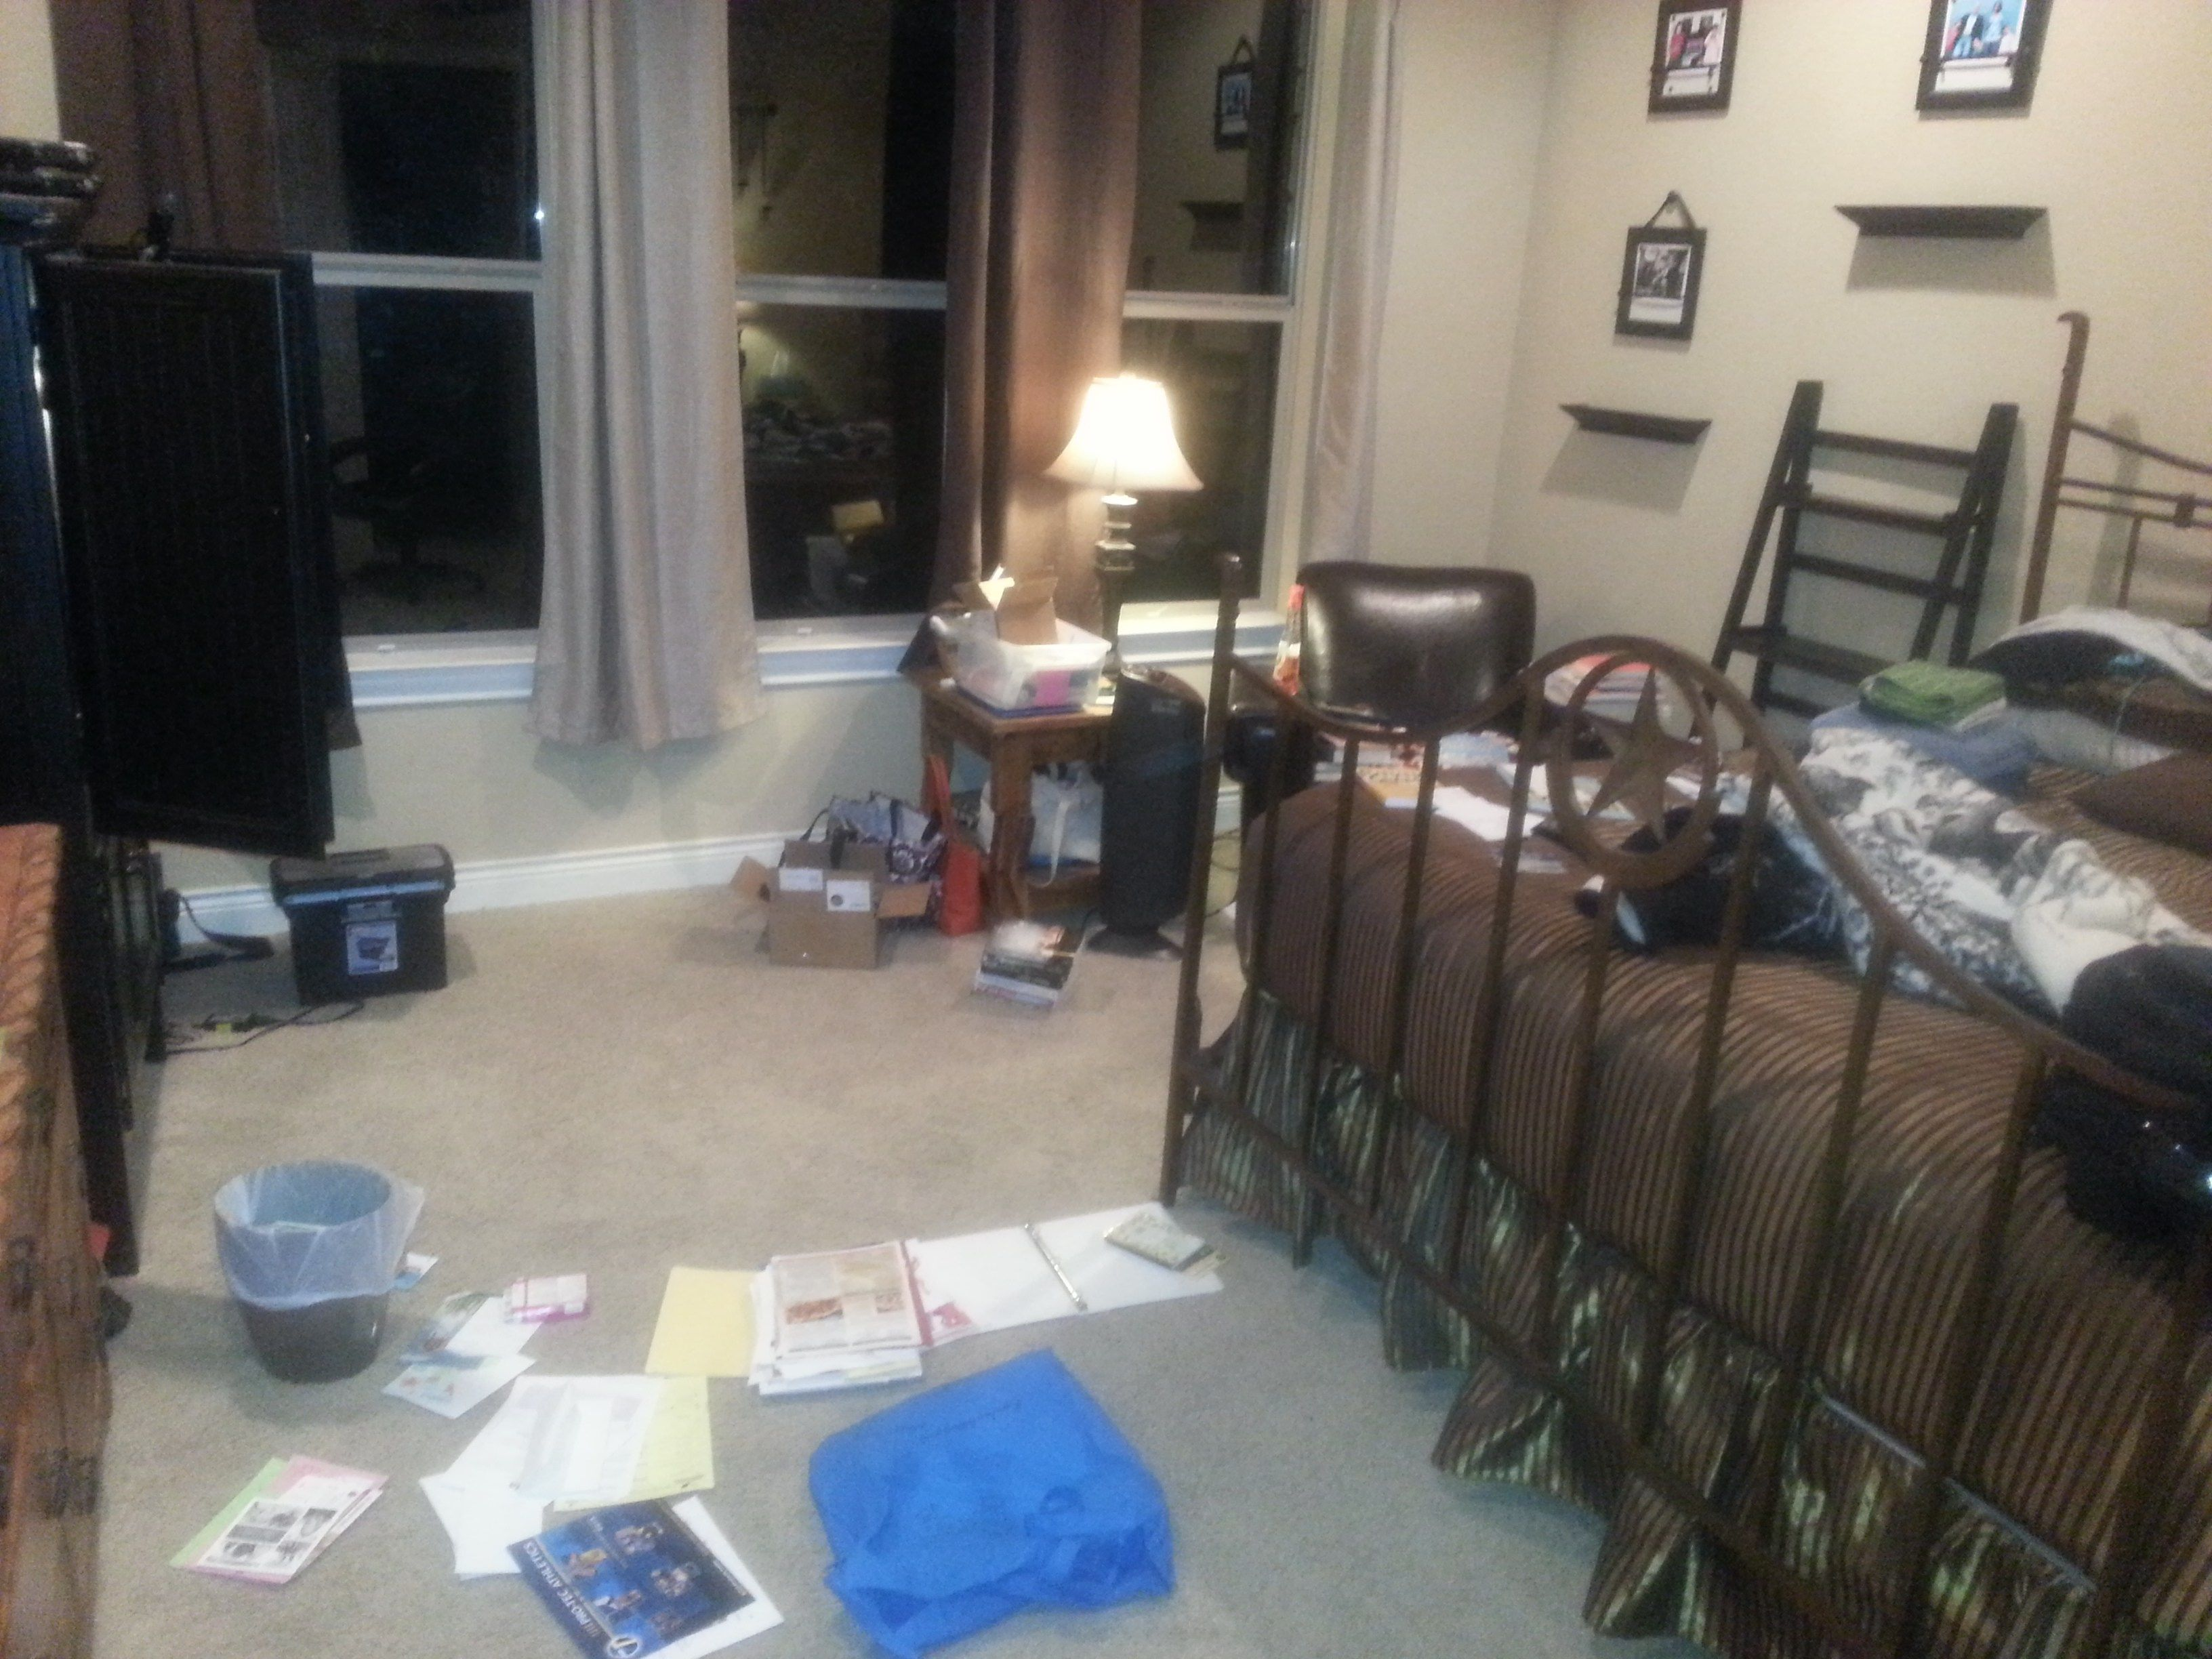 Purging the Mess Has Freed My Mind